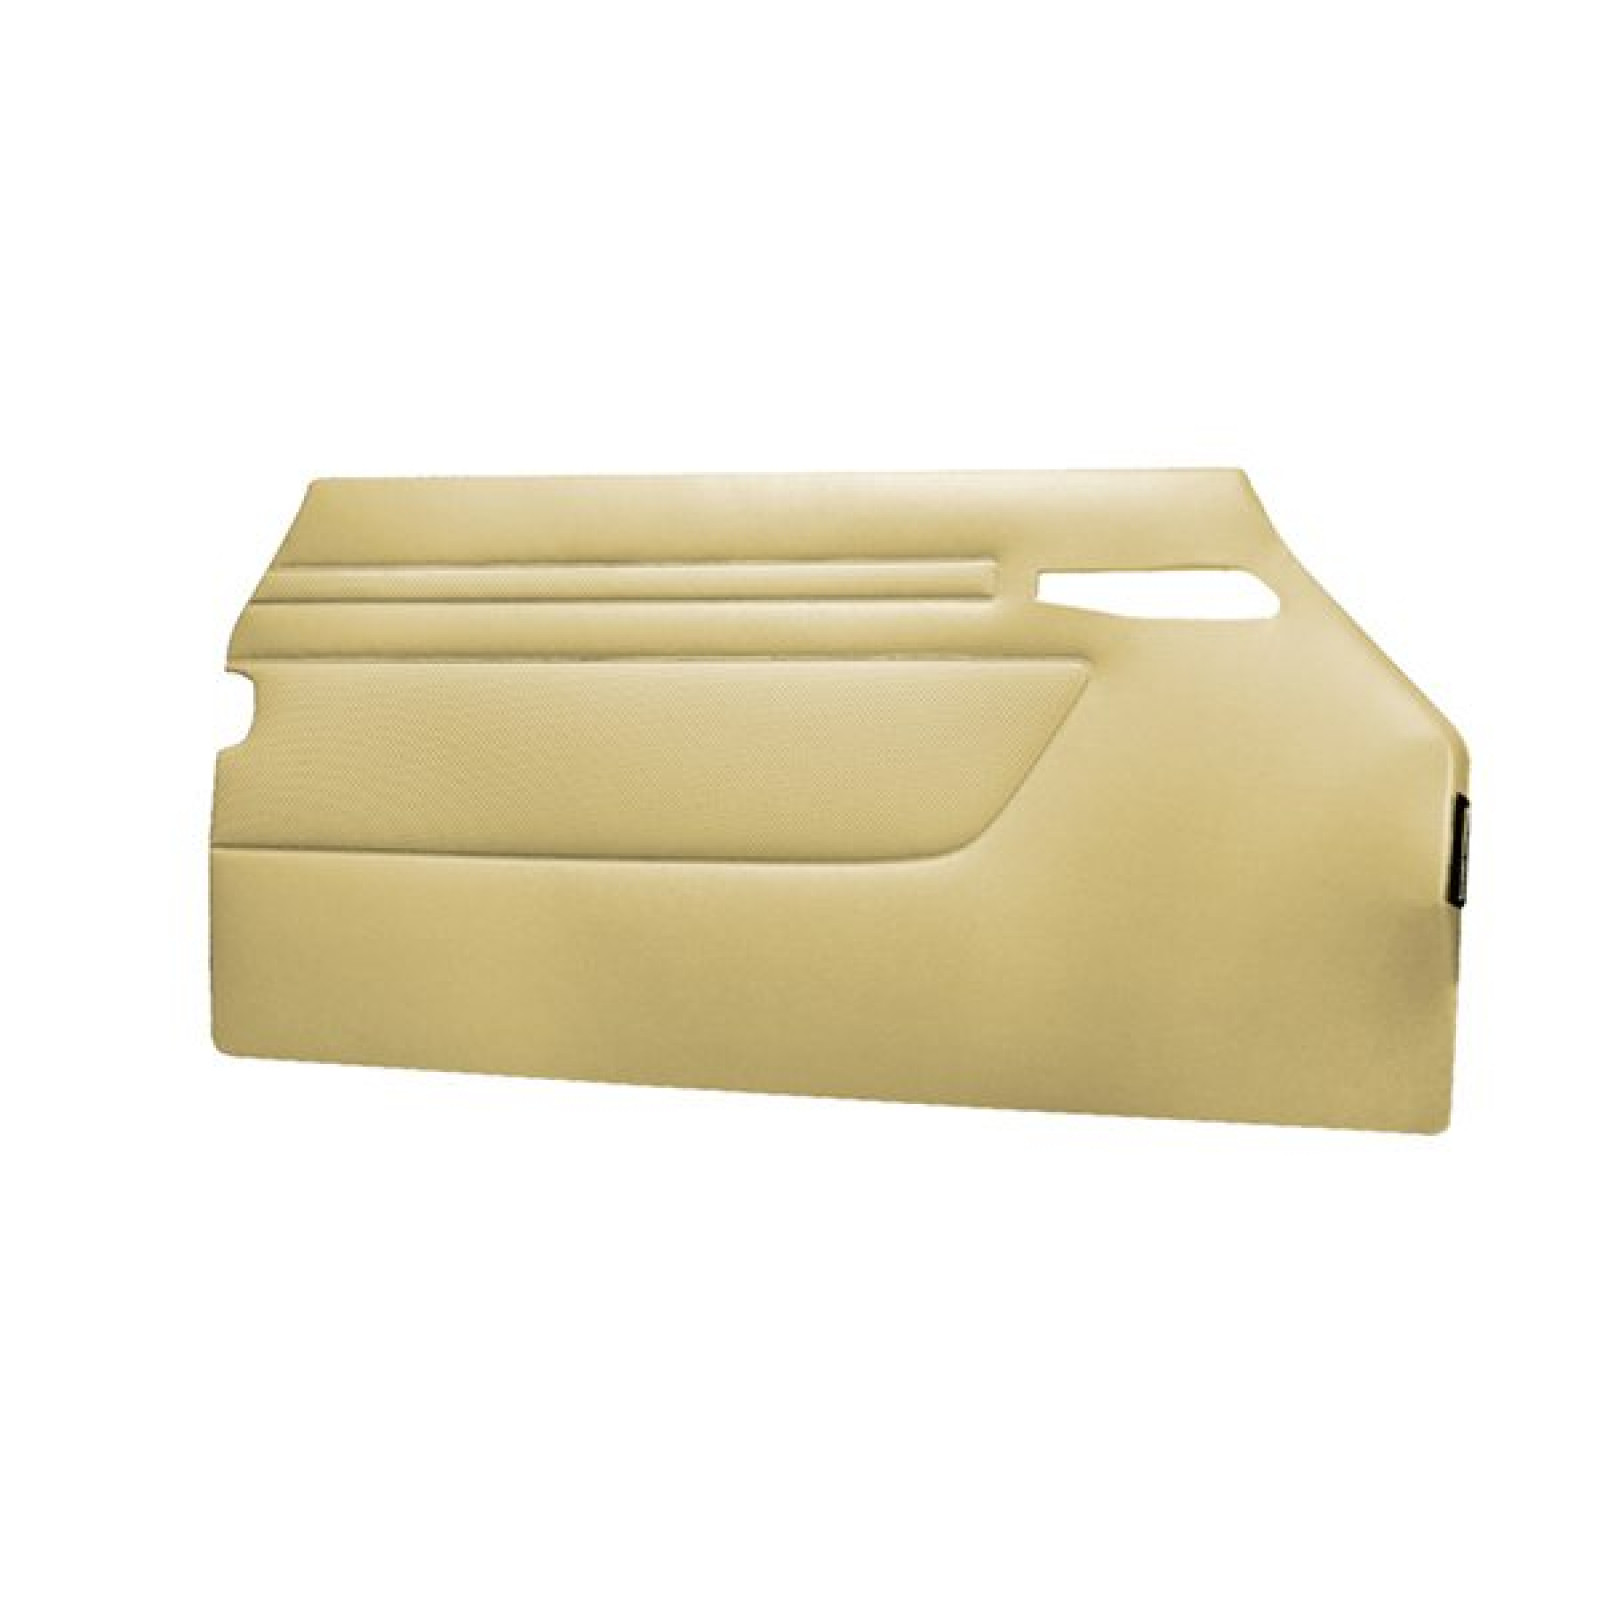 ... Mercedes-Benz SL R107 MB Tex Door Card Panel Set - Cream ...